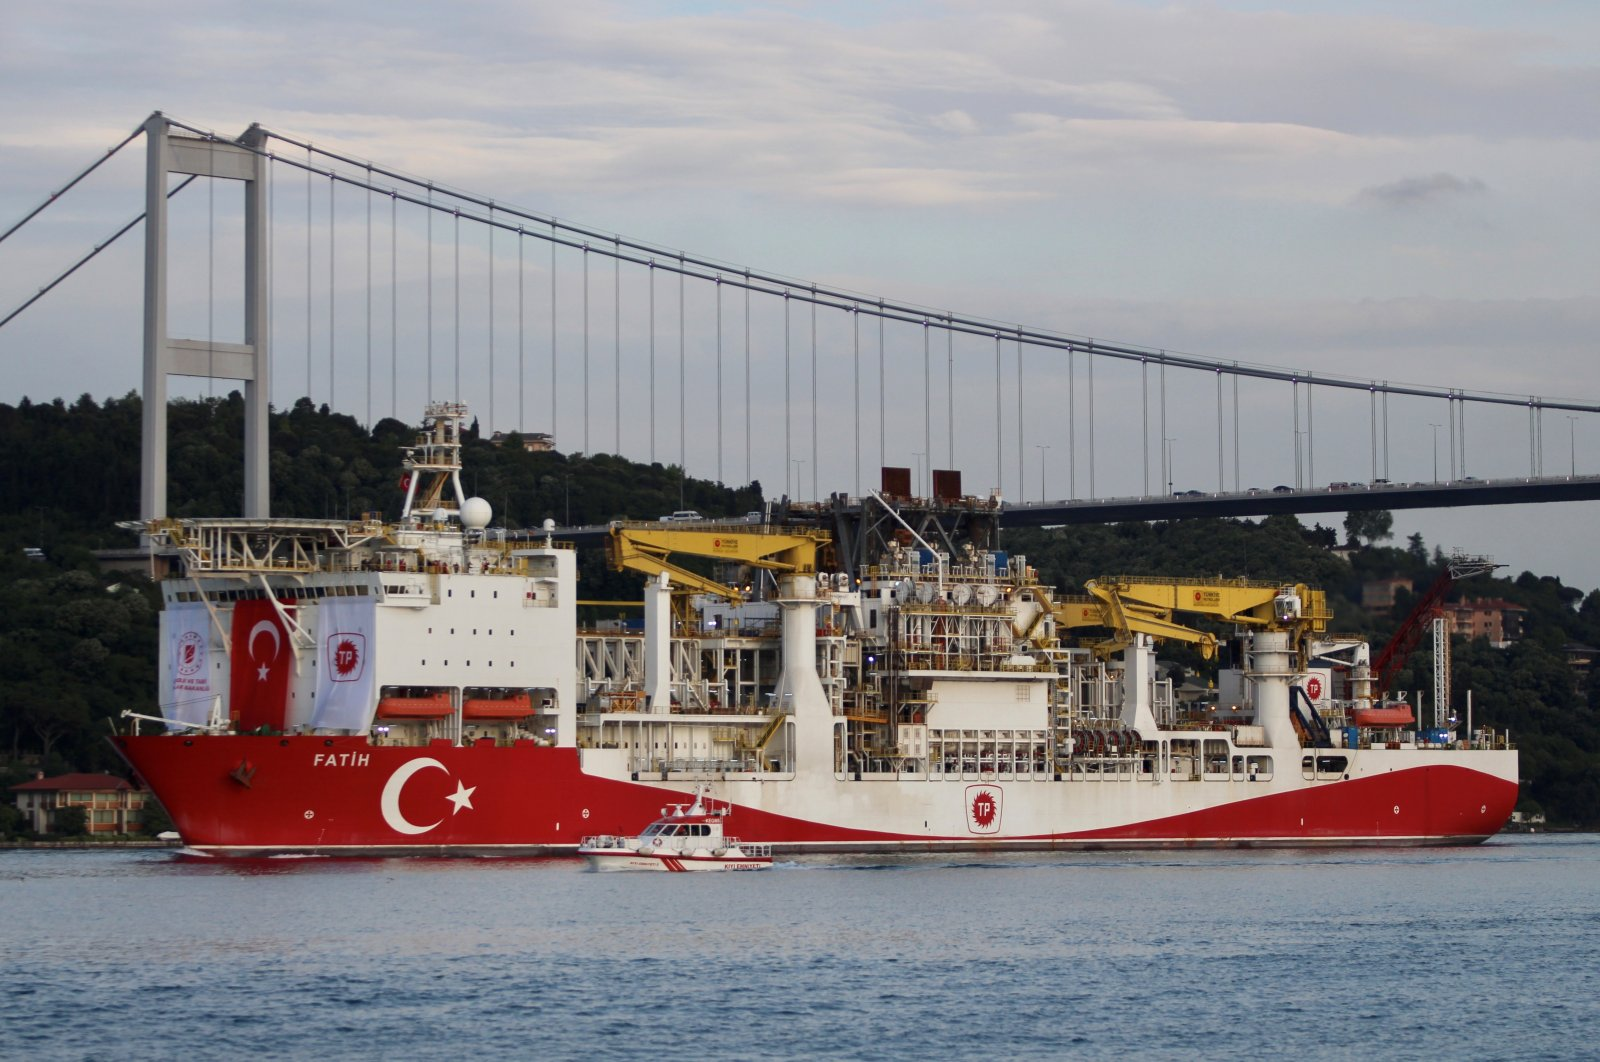 Turkey's drilling vessel Fatih sails in the Bosporus, on its way to the Black Sea, Istanbul, Turkey, May 29, 2020. (Reuters Photo)